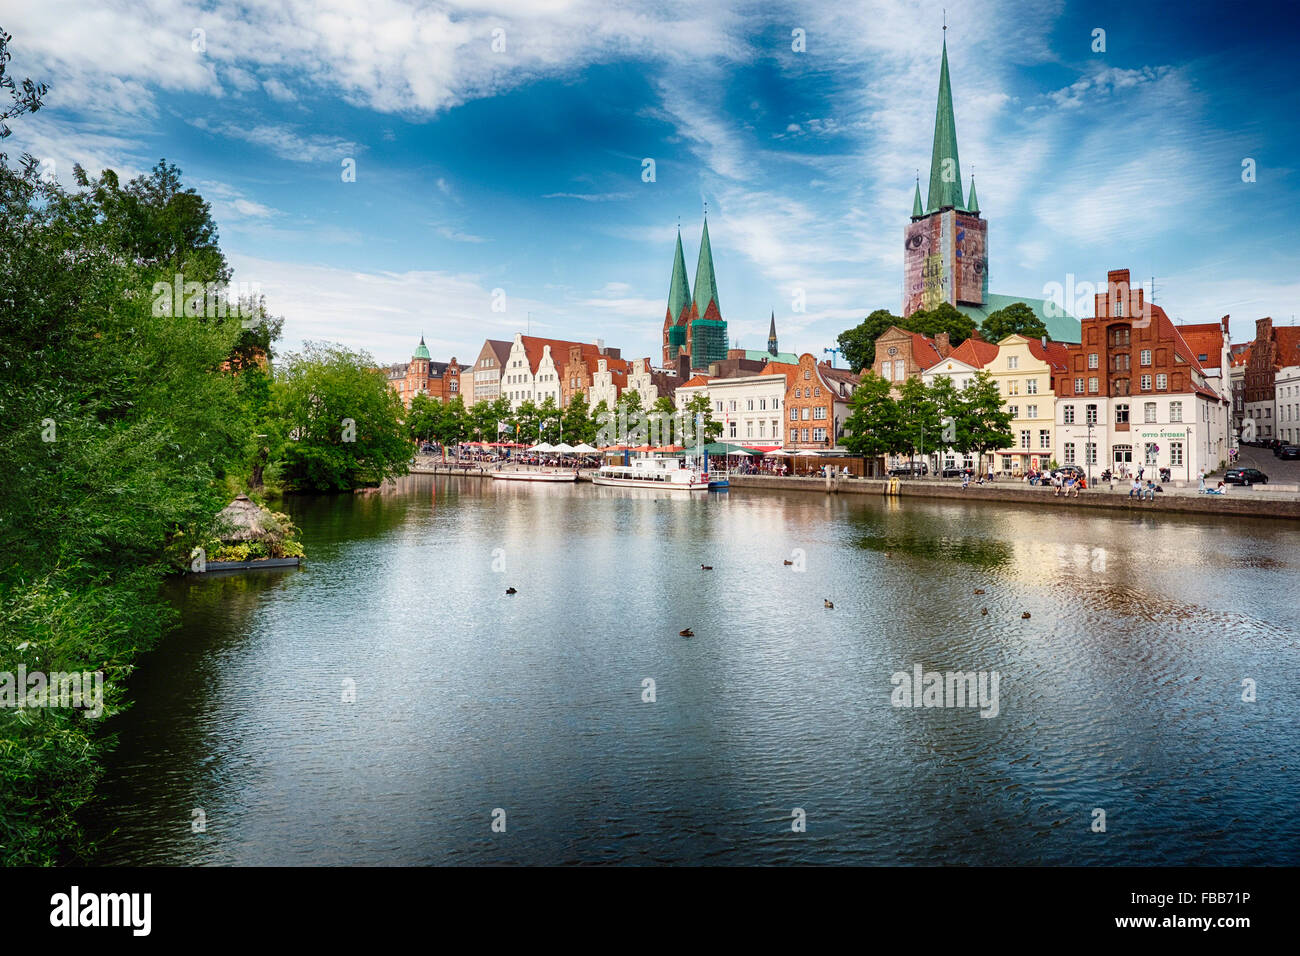 View of the Waterfront of Old Town Lubeck with the Trave Canal, Schleswig-Holstein, Germany Stock Photo